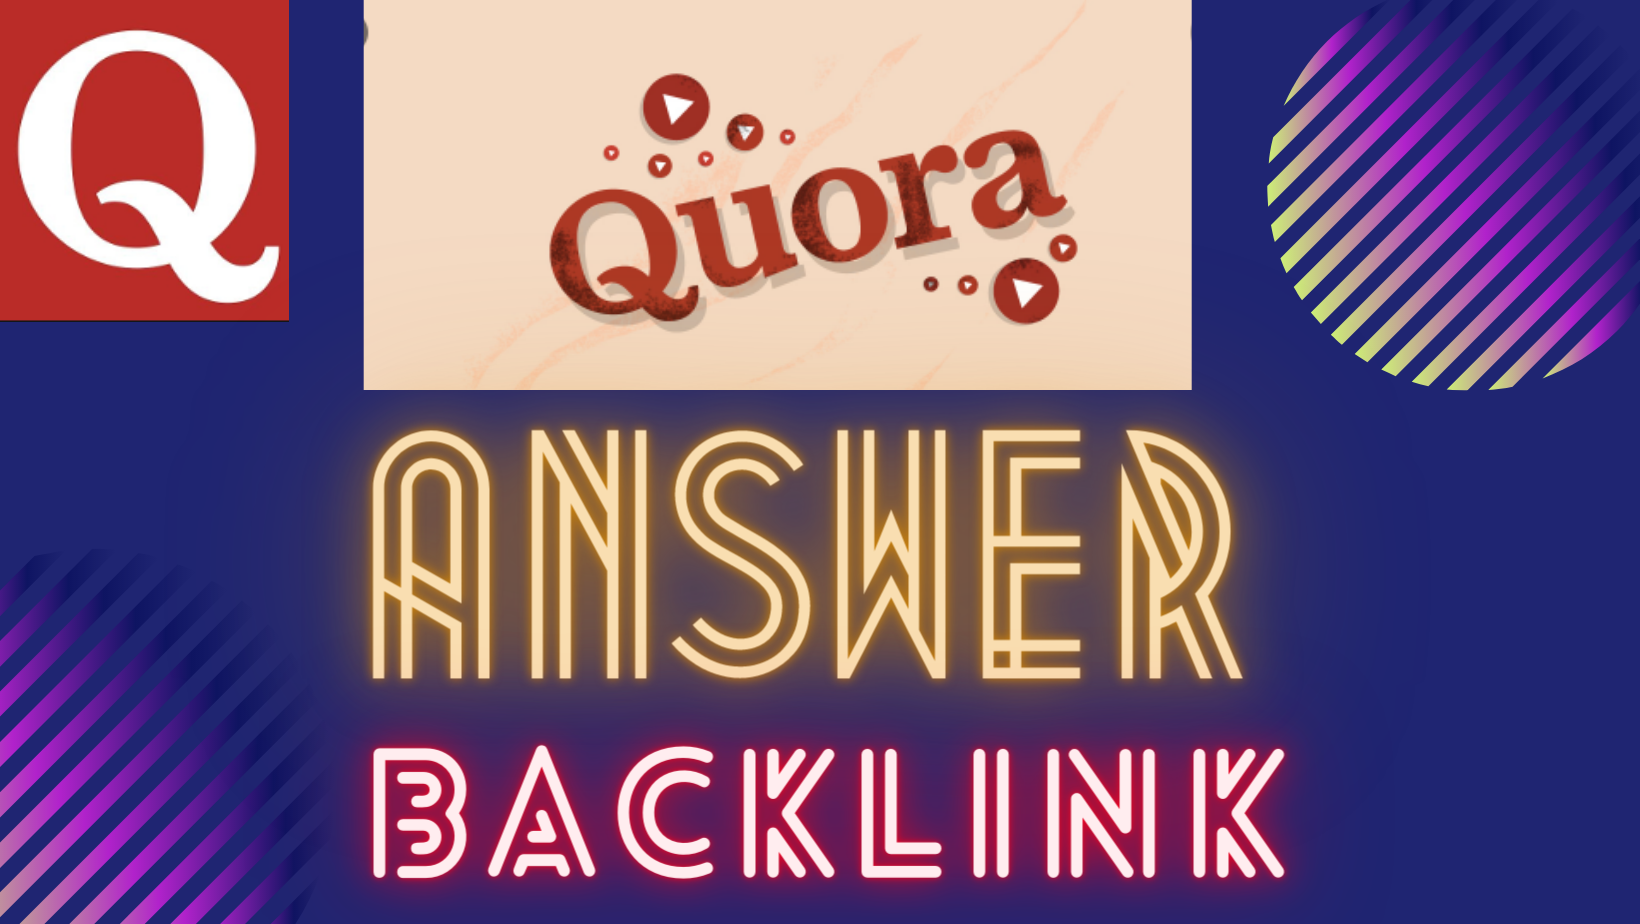 10 Quora Answers Based on Keywords including Backlink